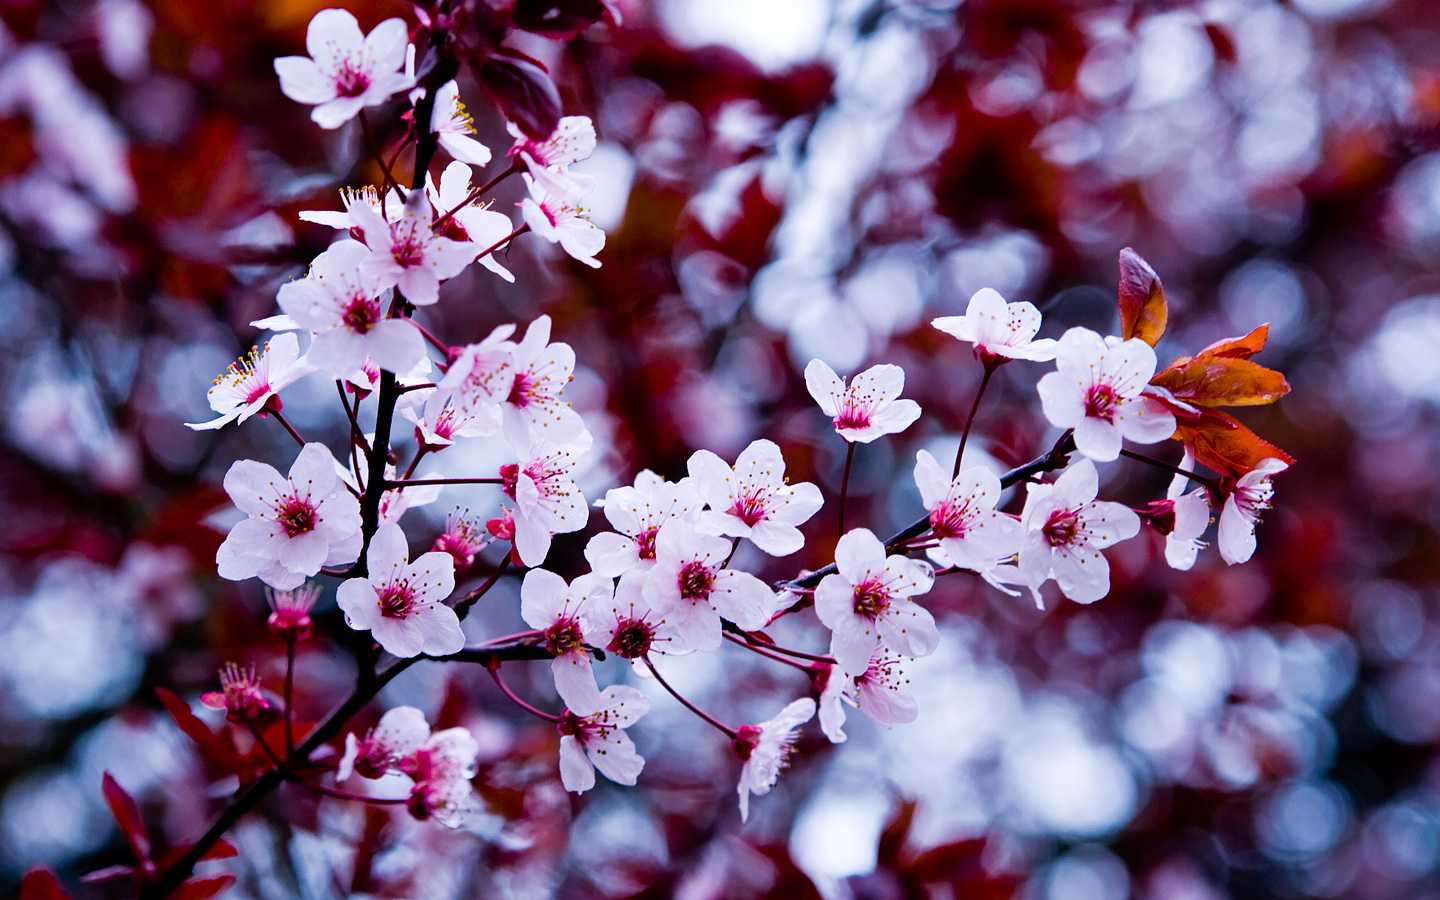 Early spring flowers wallpaper best background wallpaper funmozar spring flowers wallpapers mightylinksfo